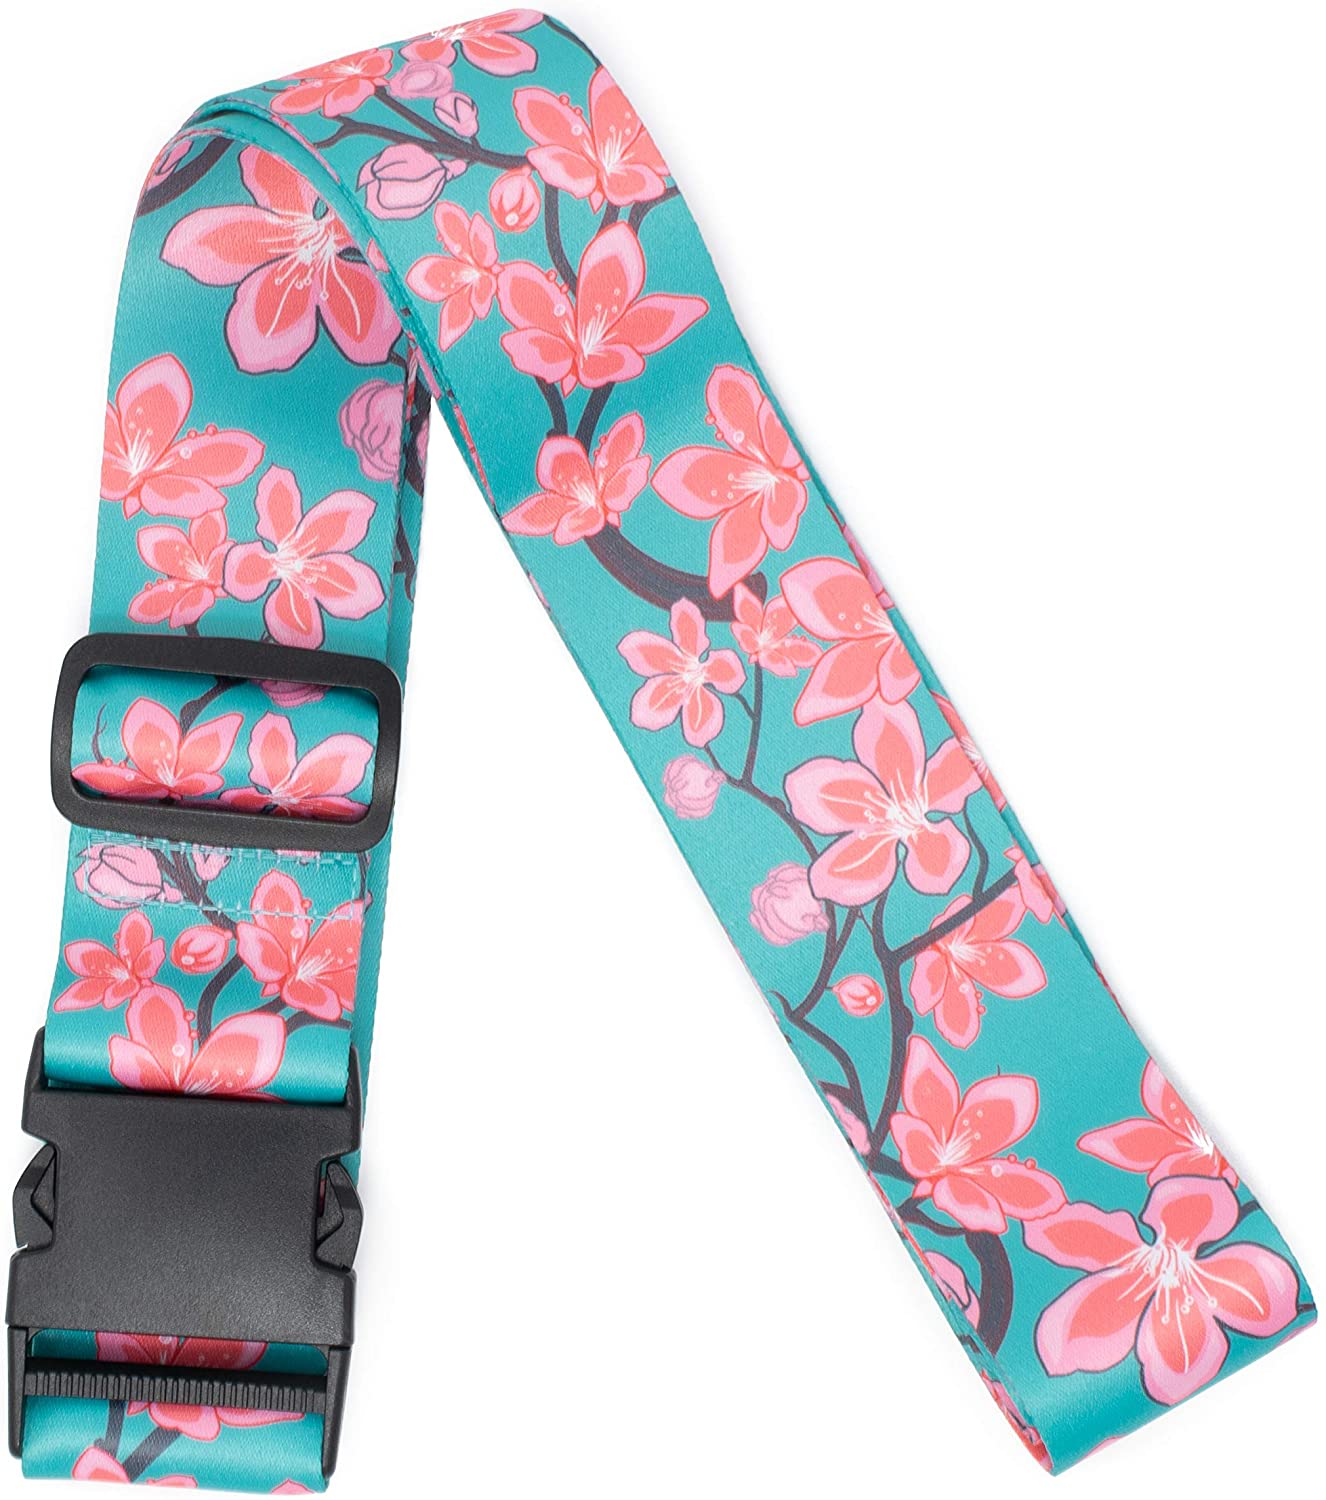 Teal Cherry Blossoms Luggage Straps Suitcase Belt by Limeloot